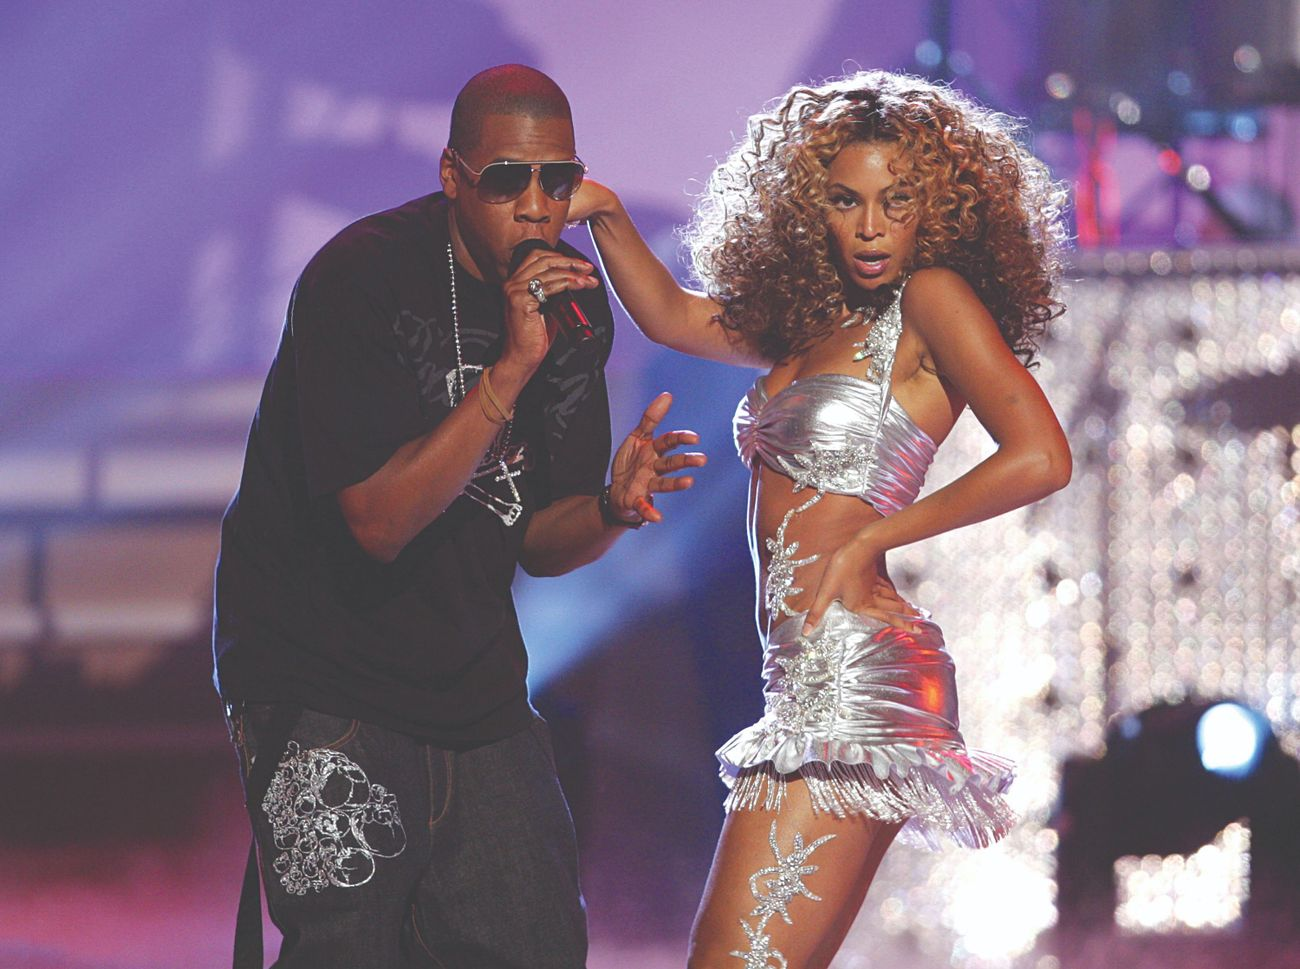 879ccaf39295d0 The Secret Jewish History Of Beyoncé And Jay-Z – The Forward